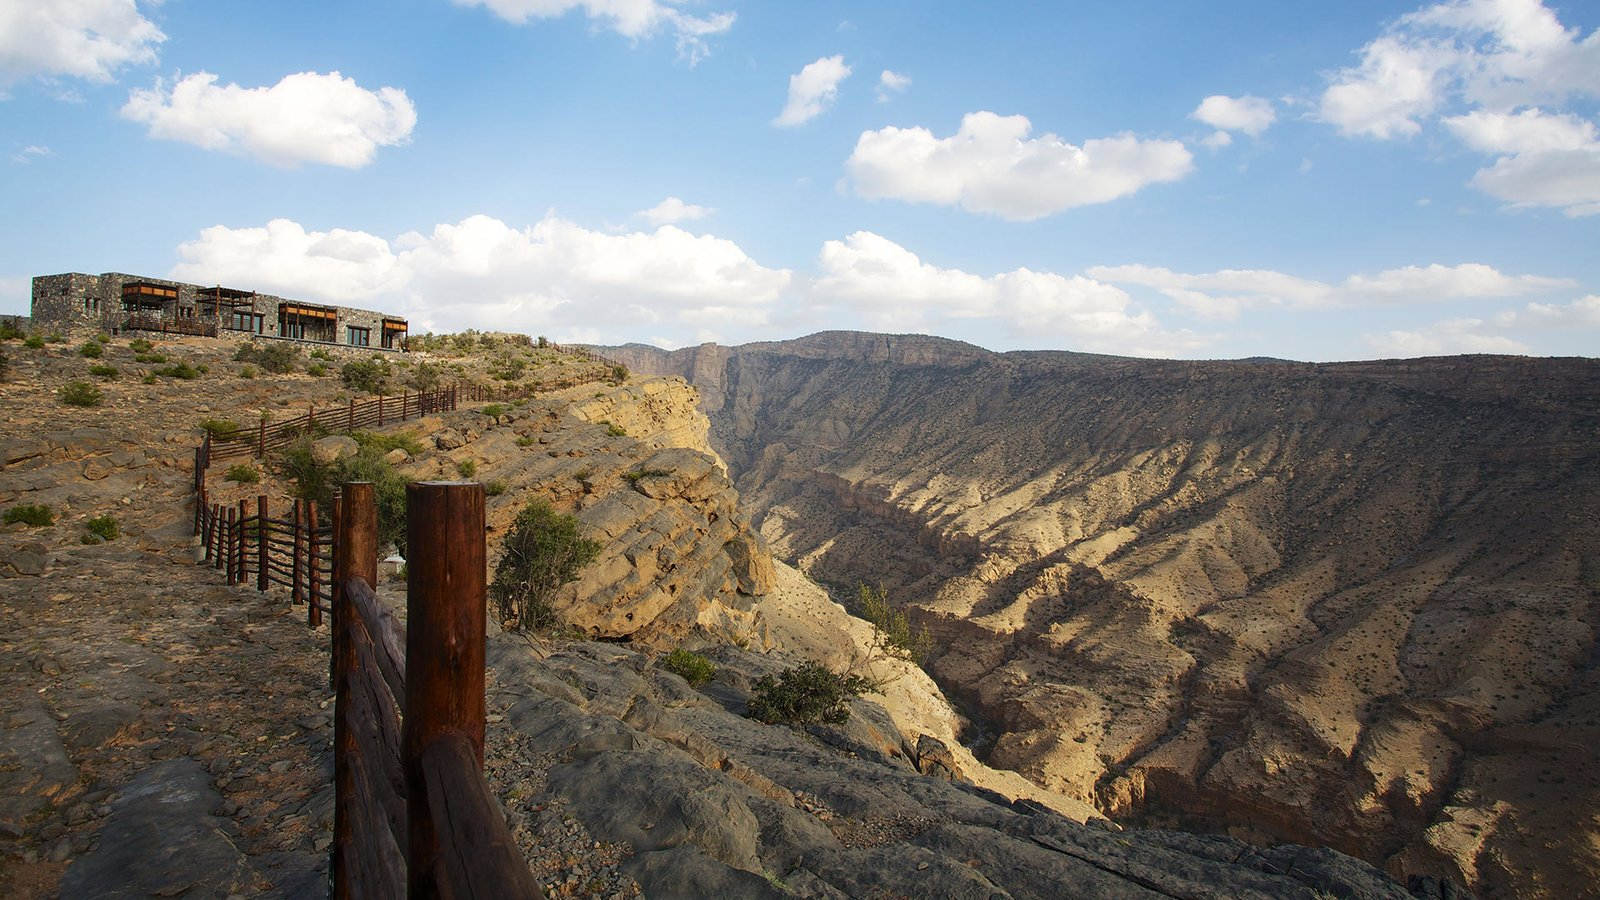 Perched high on a ridgeline, almost 2,000 meters above sea level in the Al Hahar Mountains, this resort, which was opened in 2016, is a rustic yet contemporary retreat that puts you in the midst of Oman's stunning natural landscape.  Photo 9 of 10 in 10 Cliffside Destinations That Will Make You Feel on Top of the World